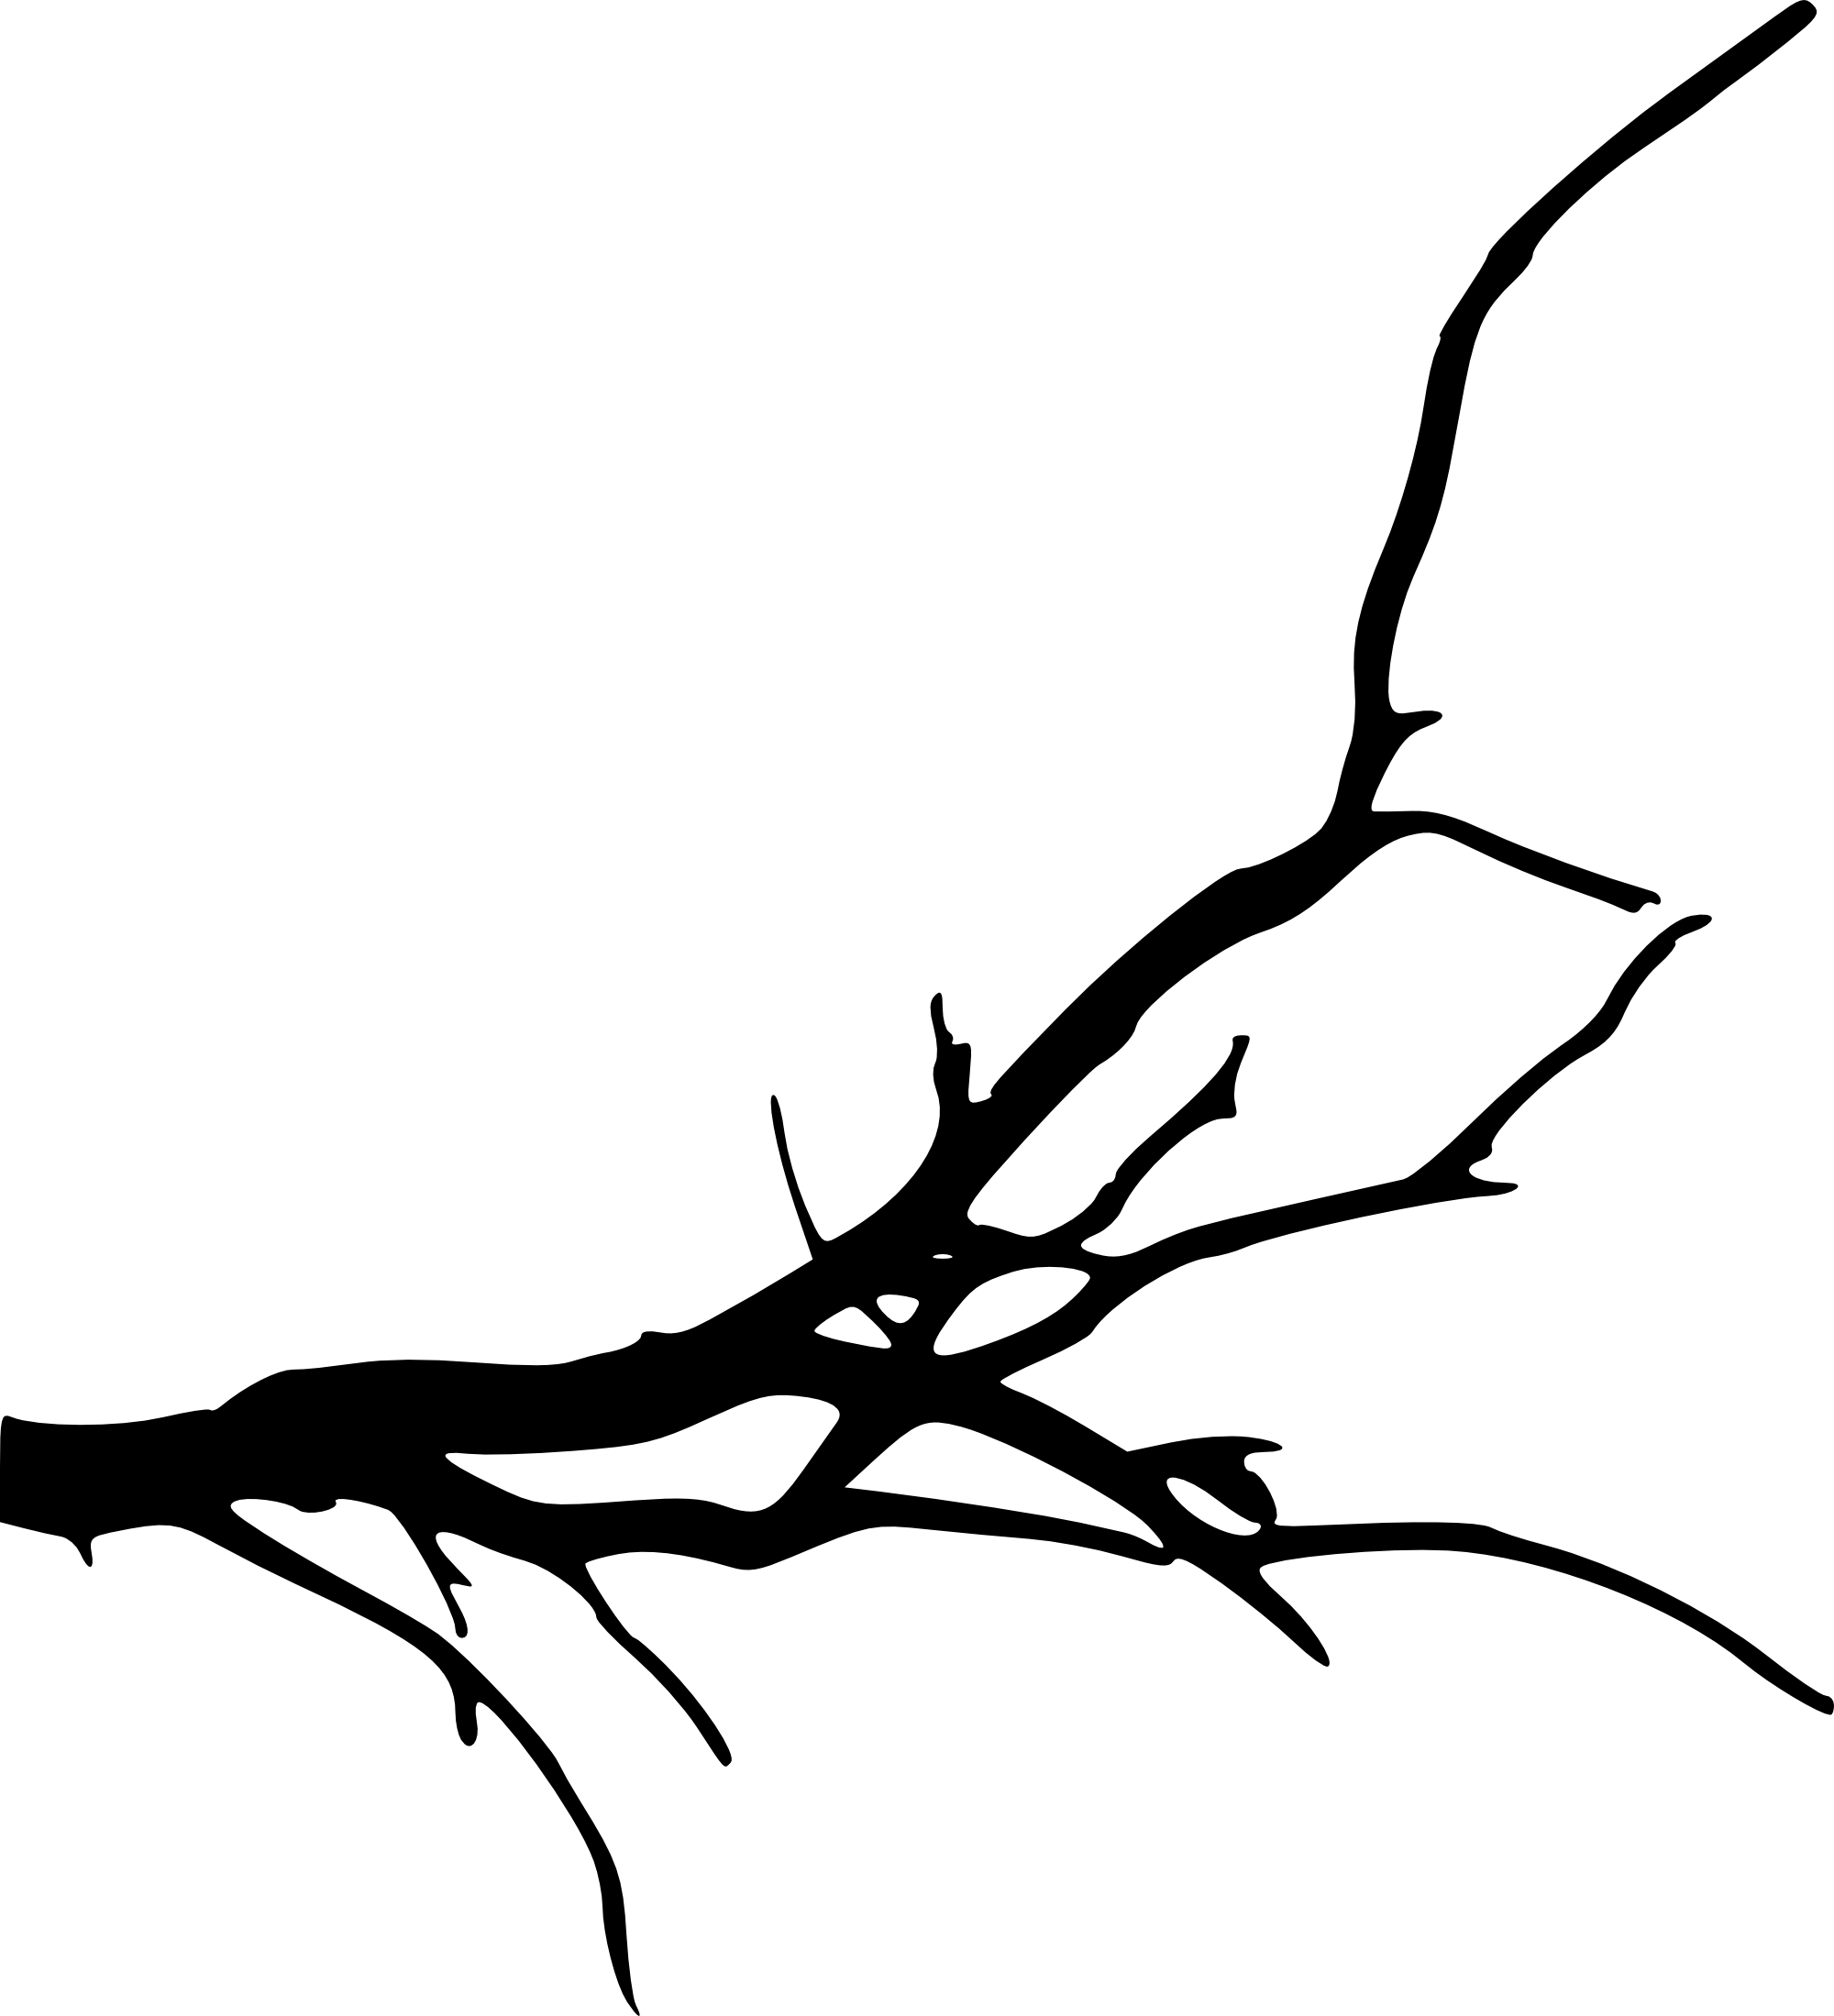 tree branch silhouette 15 tree branch silhouettes png transparent onlygfxcom silhouette branch tree